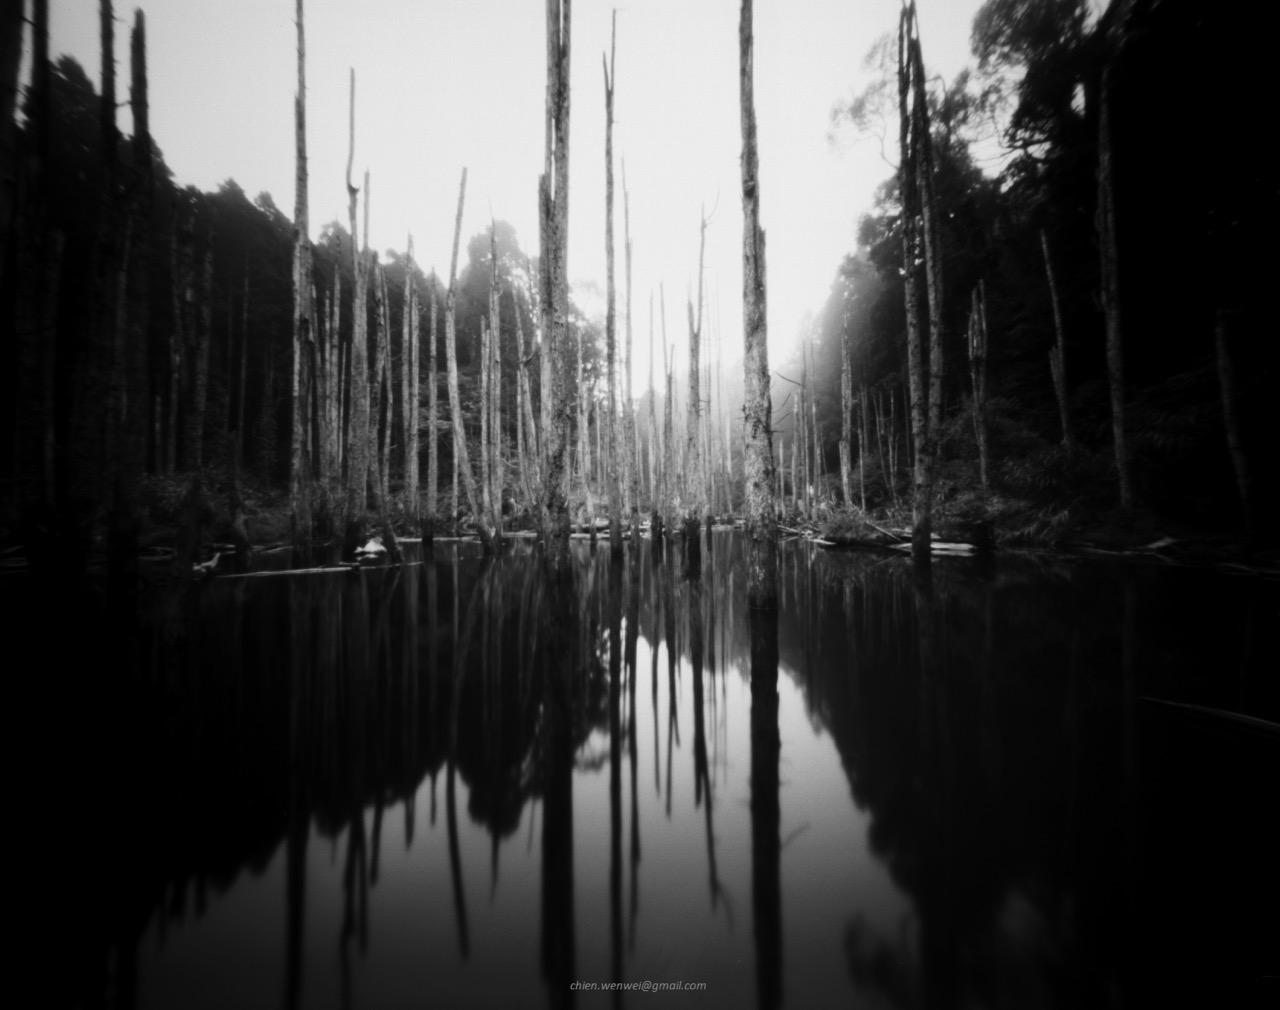 An Abandoned Forest, 4x5 pinhole camera, TMAX 100, ©Chien Wenwei 2015